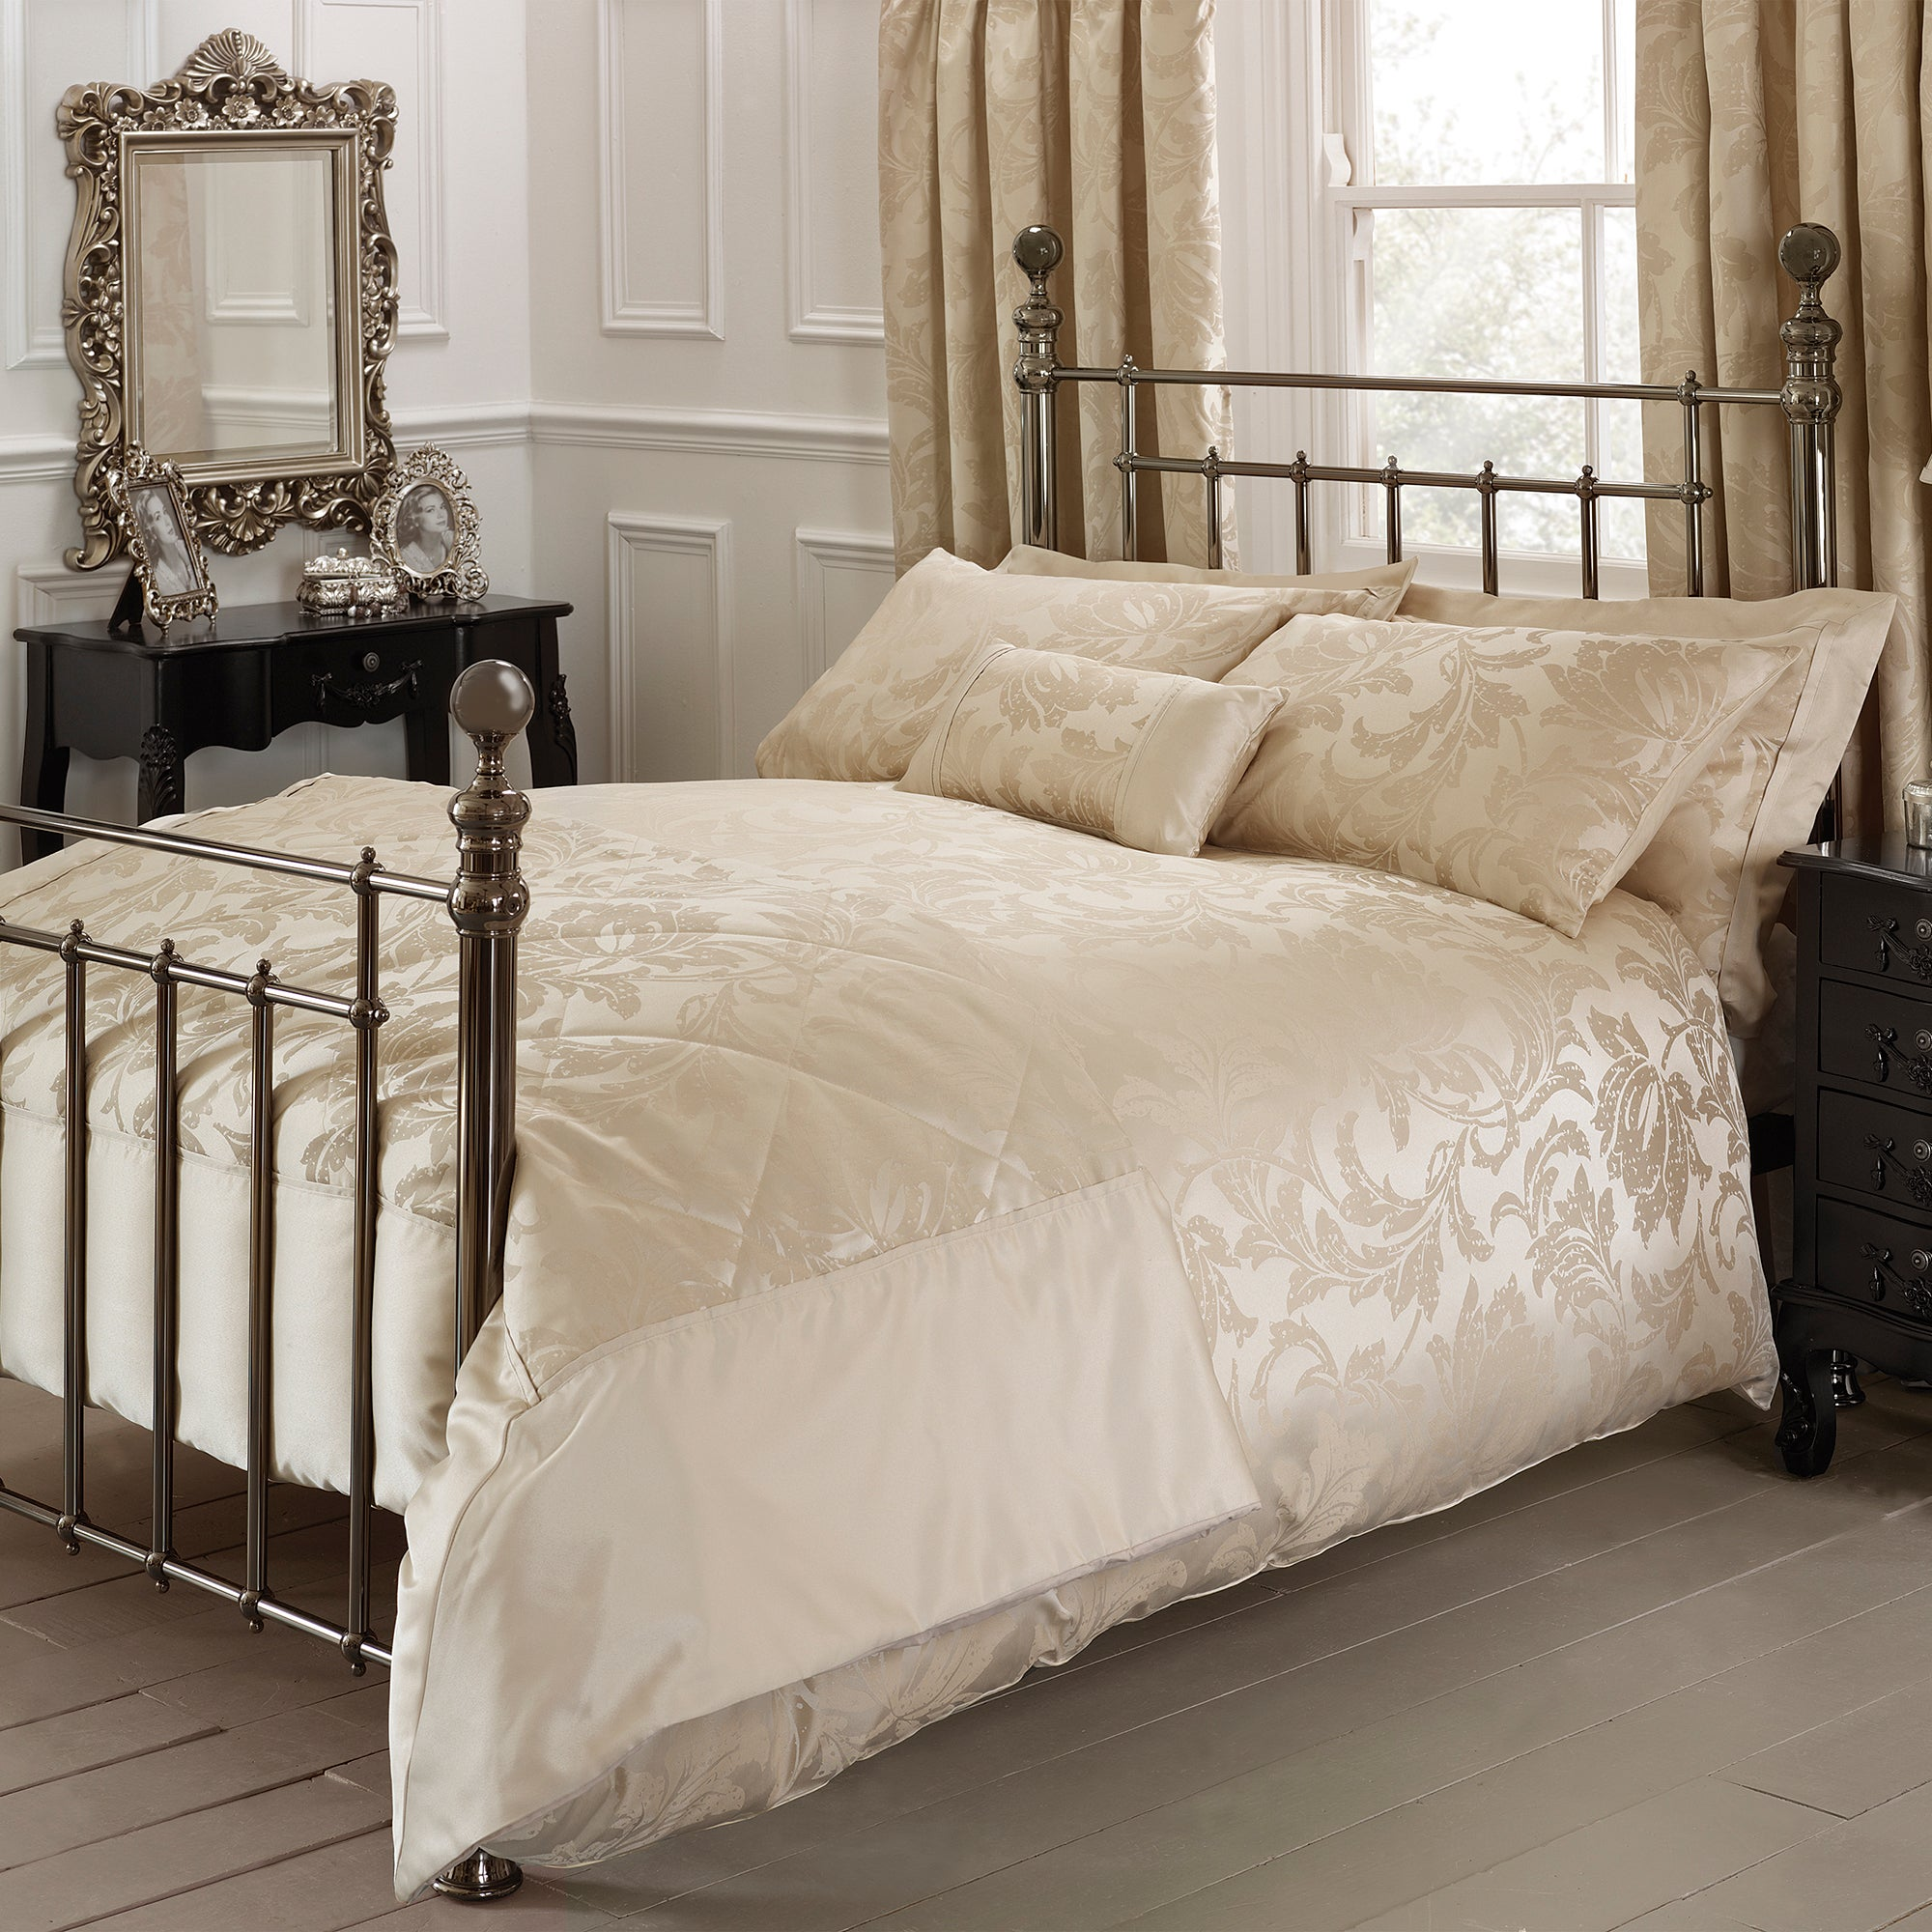 gold freya collection duvet cover dunelm. Black Bedroom Furniture Sets. Home Design Ideas